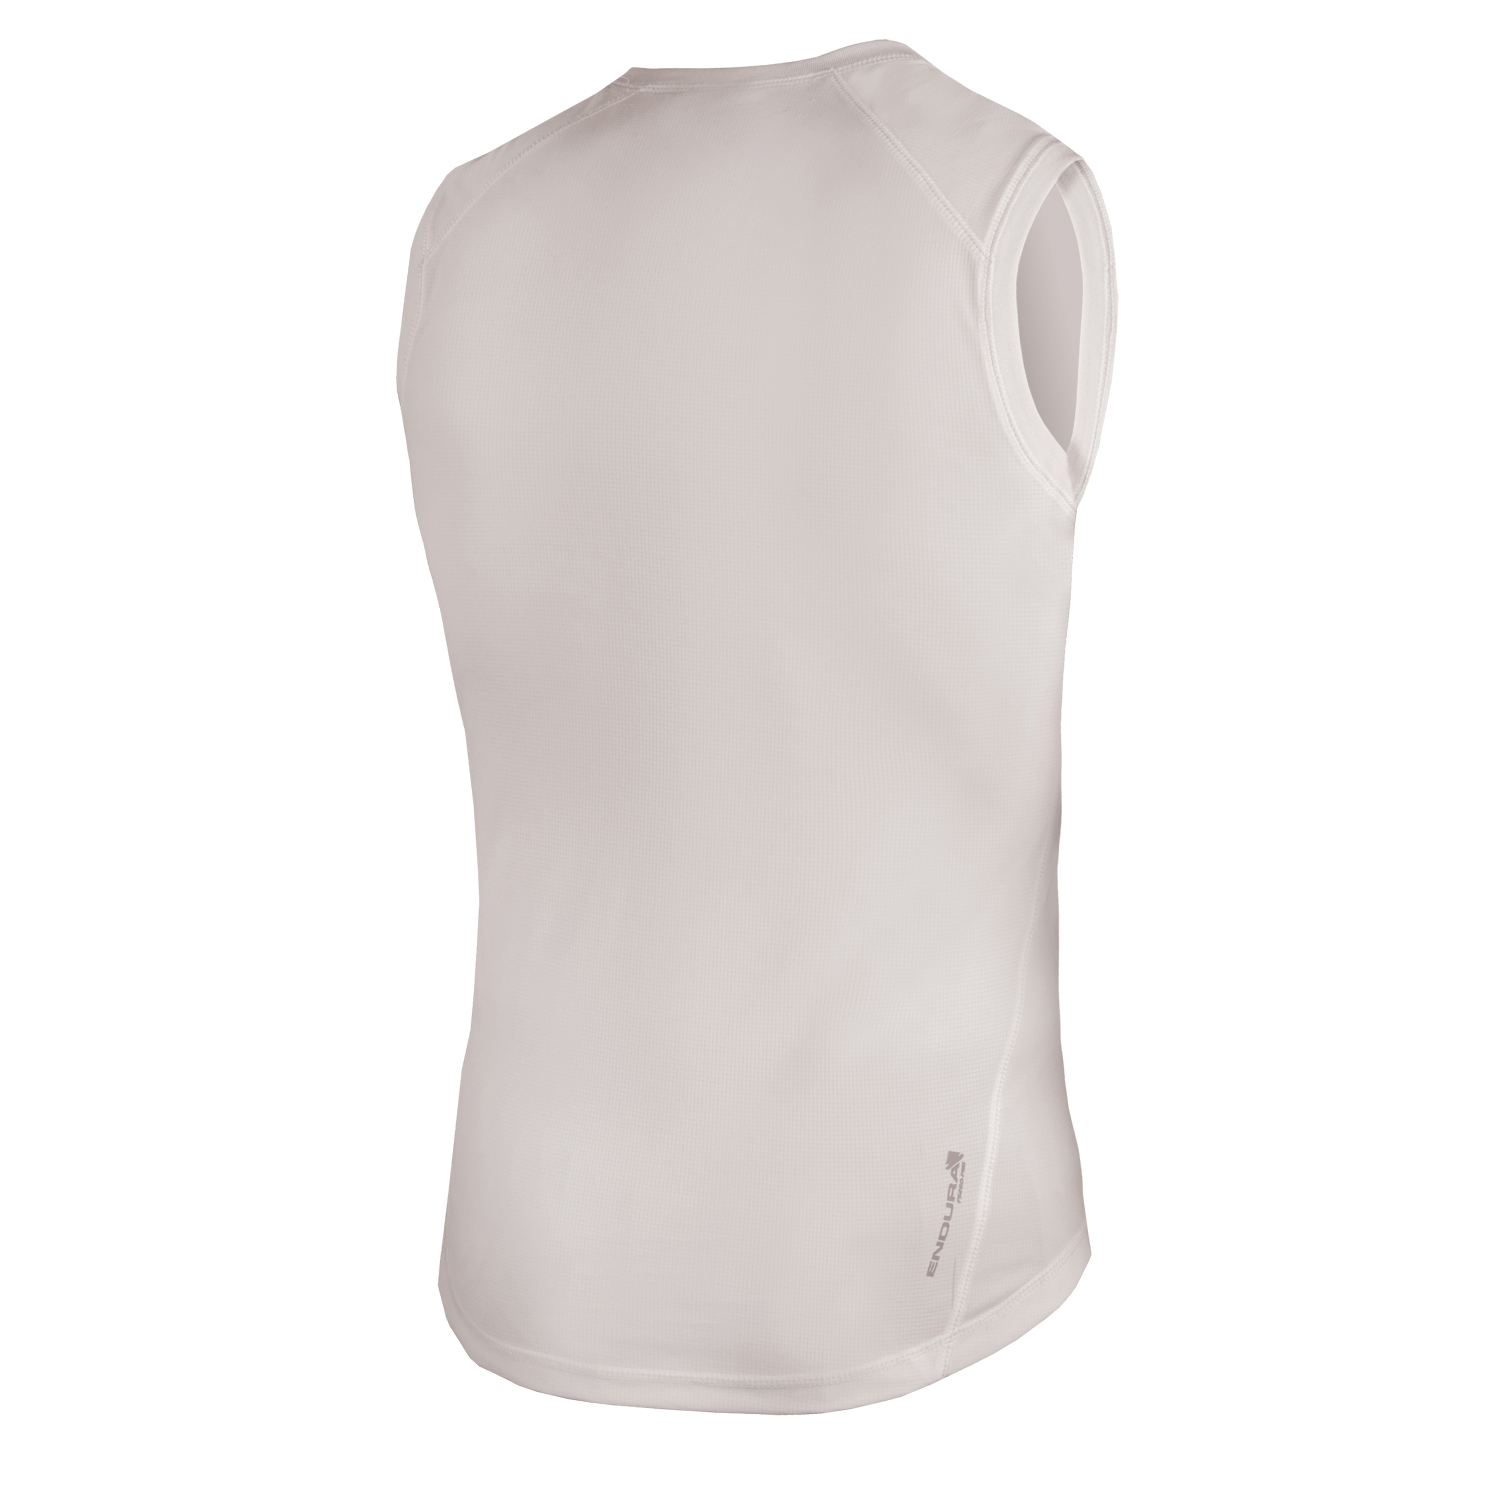 Translite S/L Baselayer White